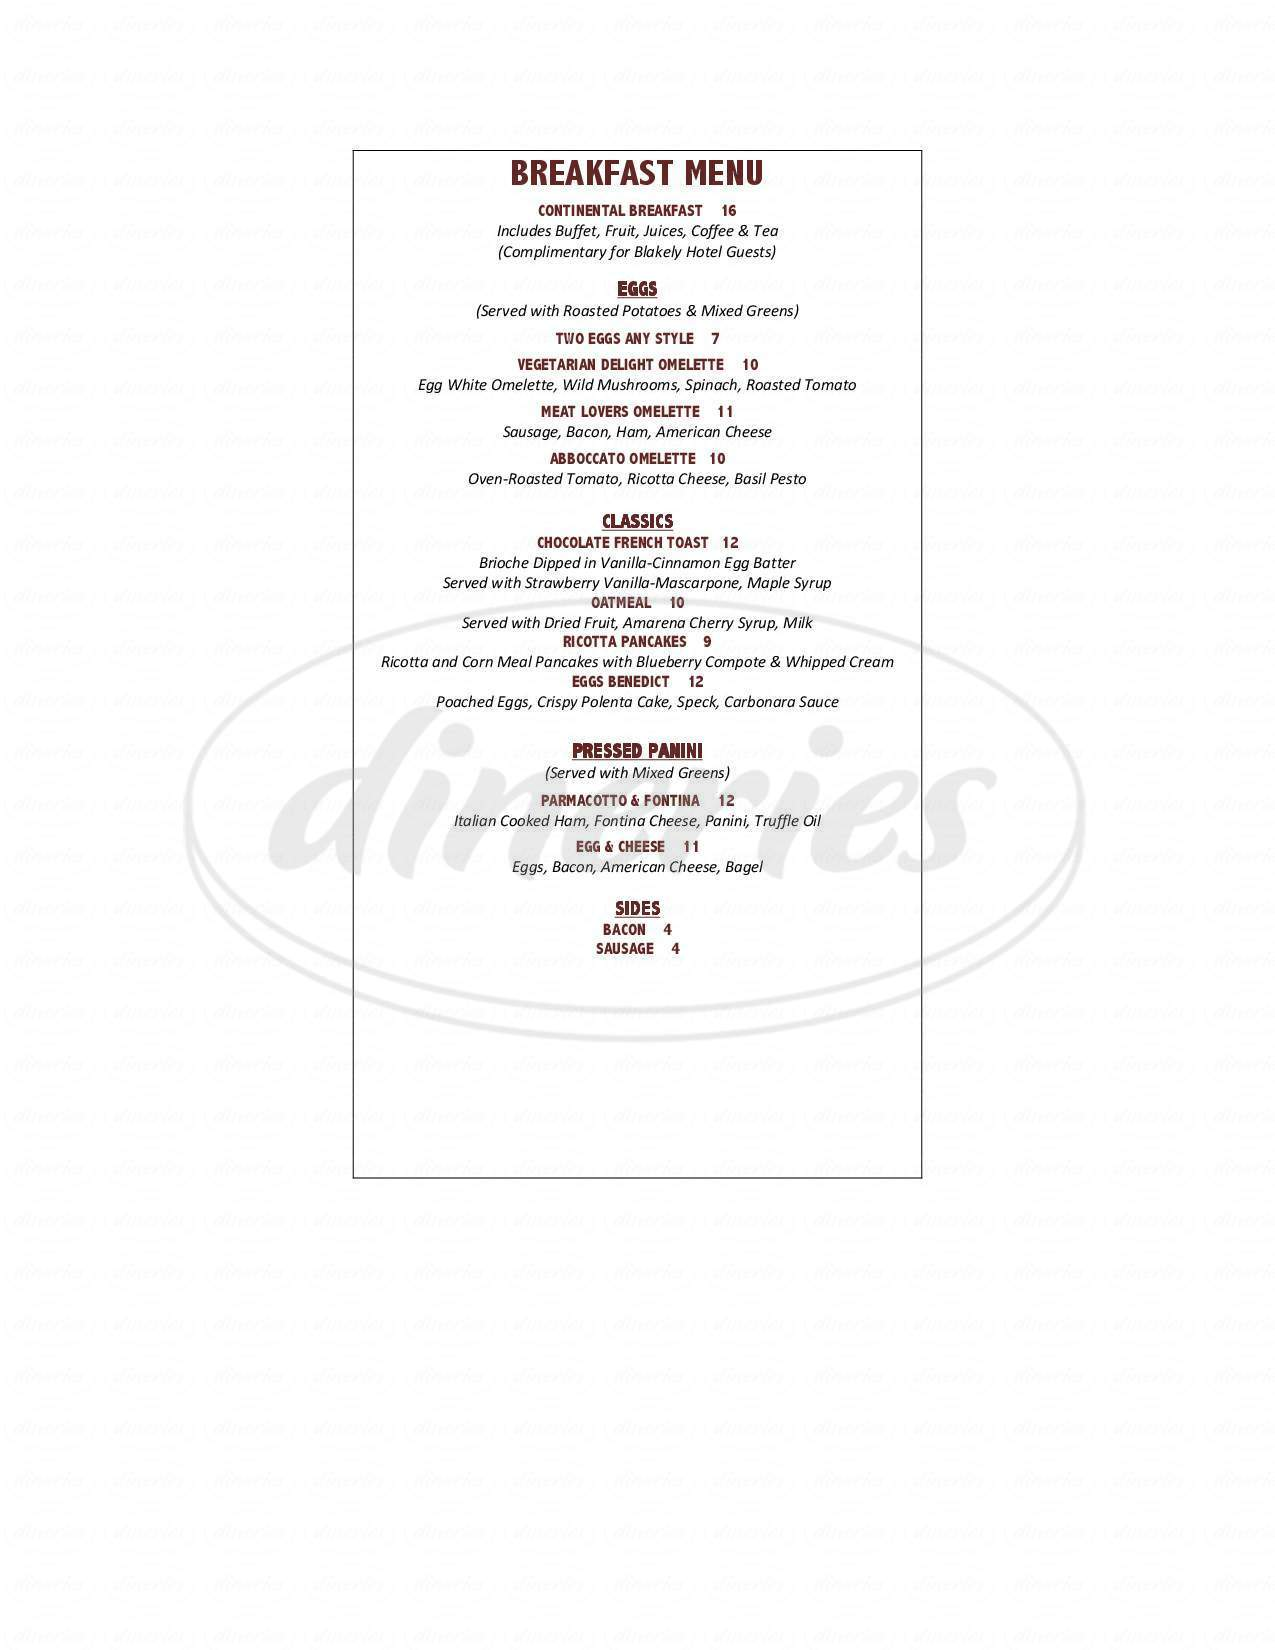 menu for Abboccato